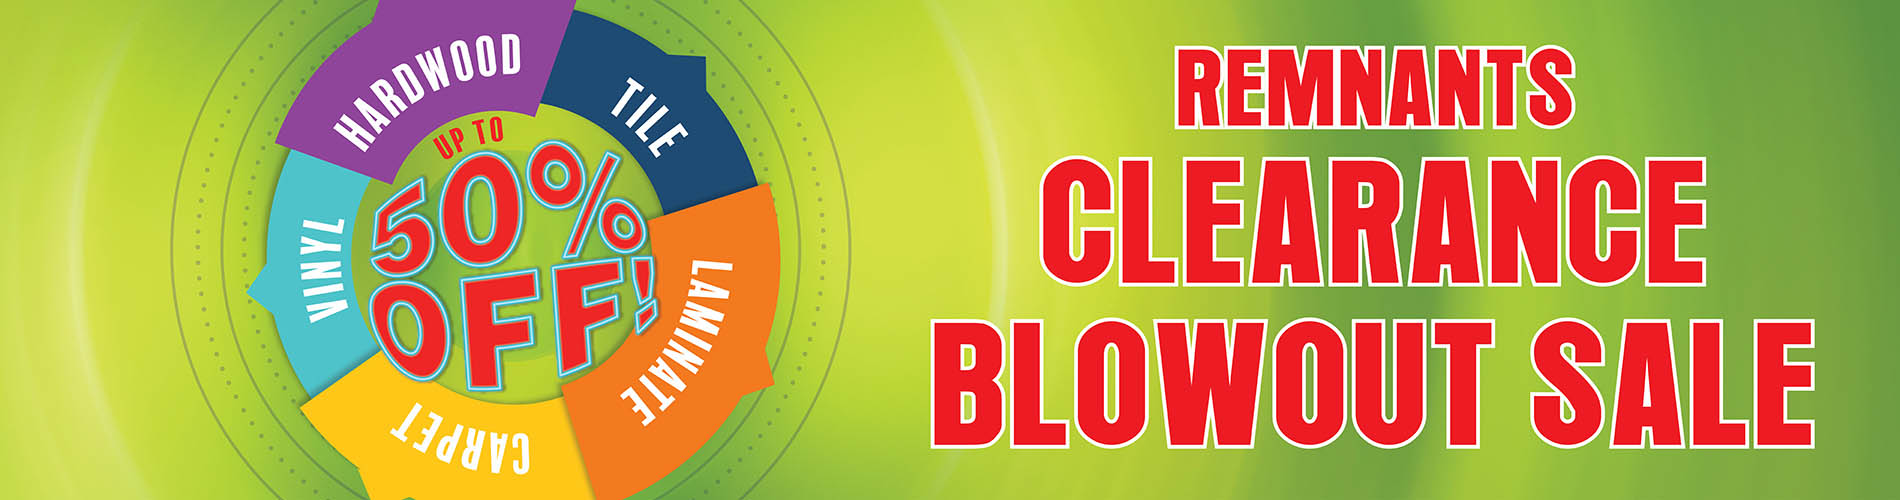 Up to 50% off hardwood, tile, laminate, carpet, and vinyl during our remnant clearance blowout sale!